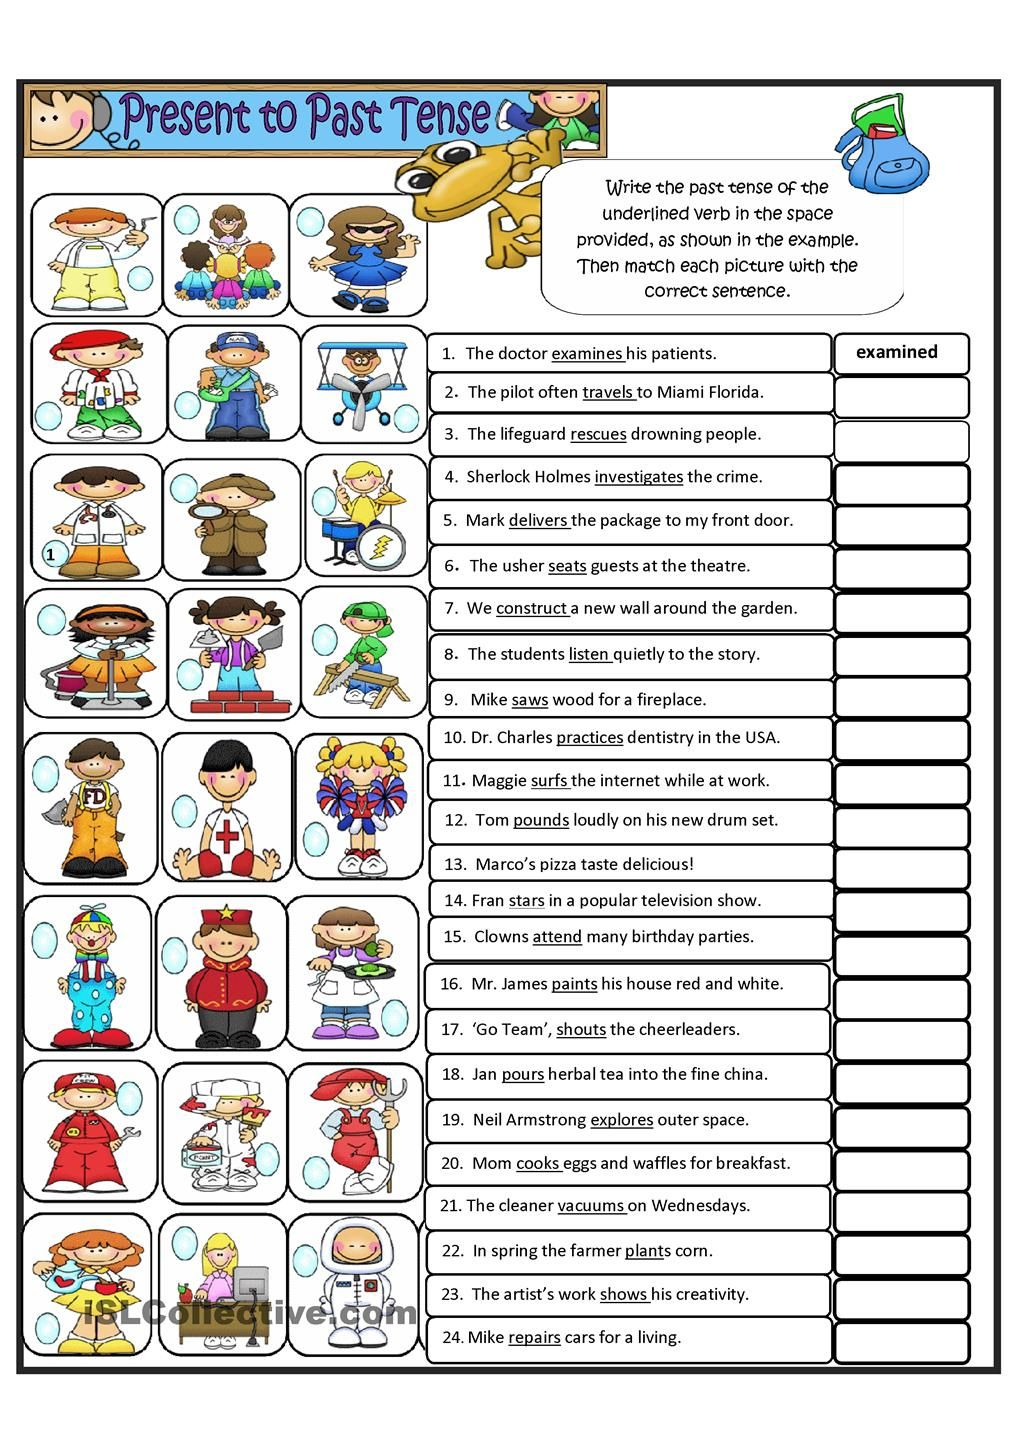 worksheet Regular Past Tense Worksheets simple present tense to past regular verbs verbs